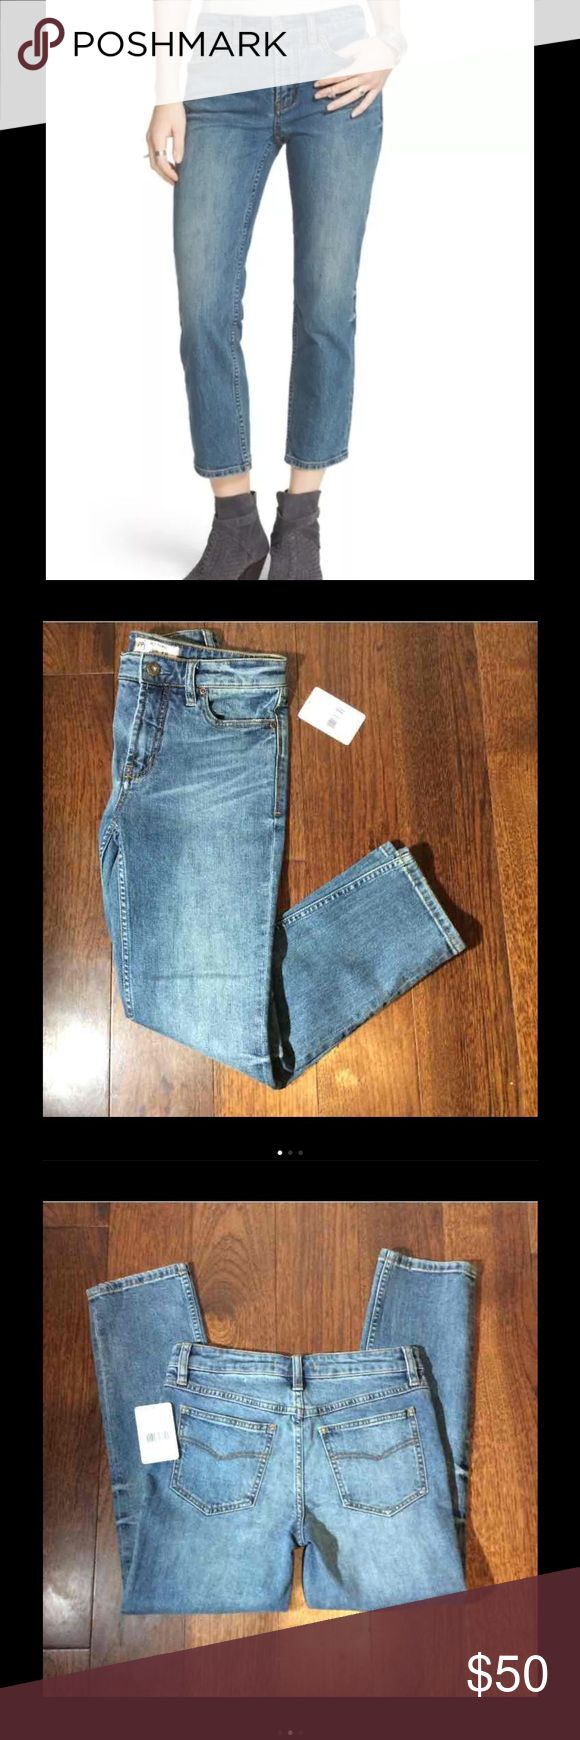 Free people blue jasper crop jeans 25 Free People Womens Crop Rock Denim Jasper Jeans 25 Retail price $78 Free People Jeans Ankle & Cropped